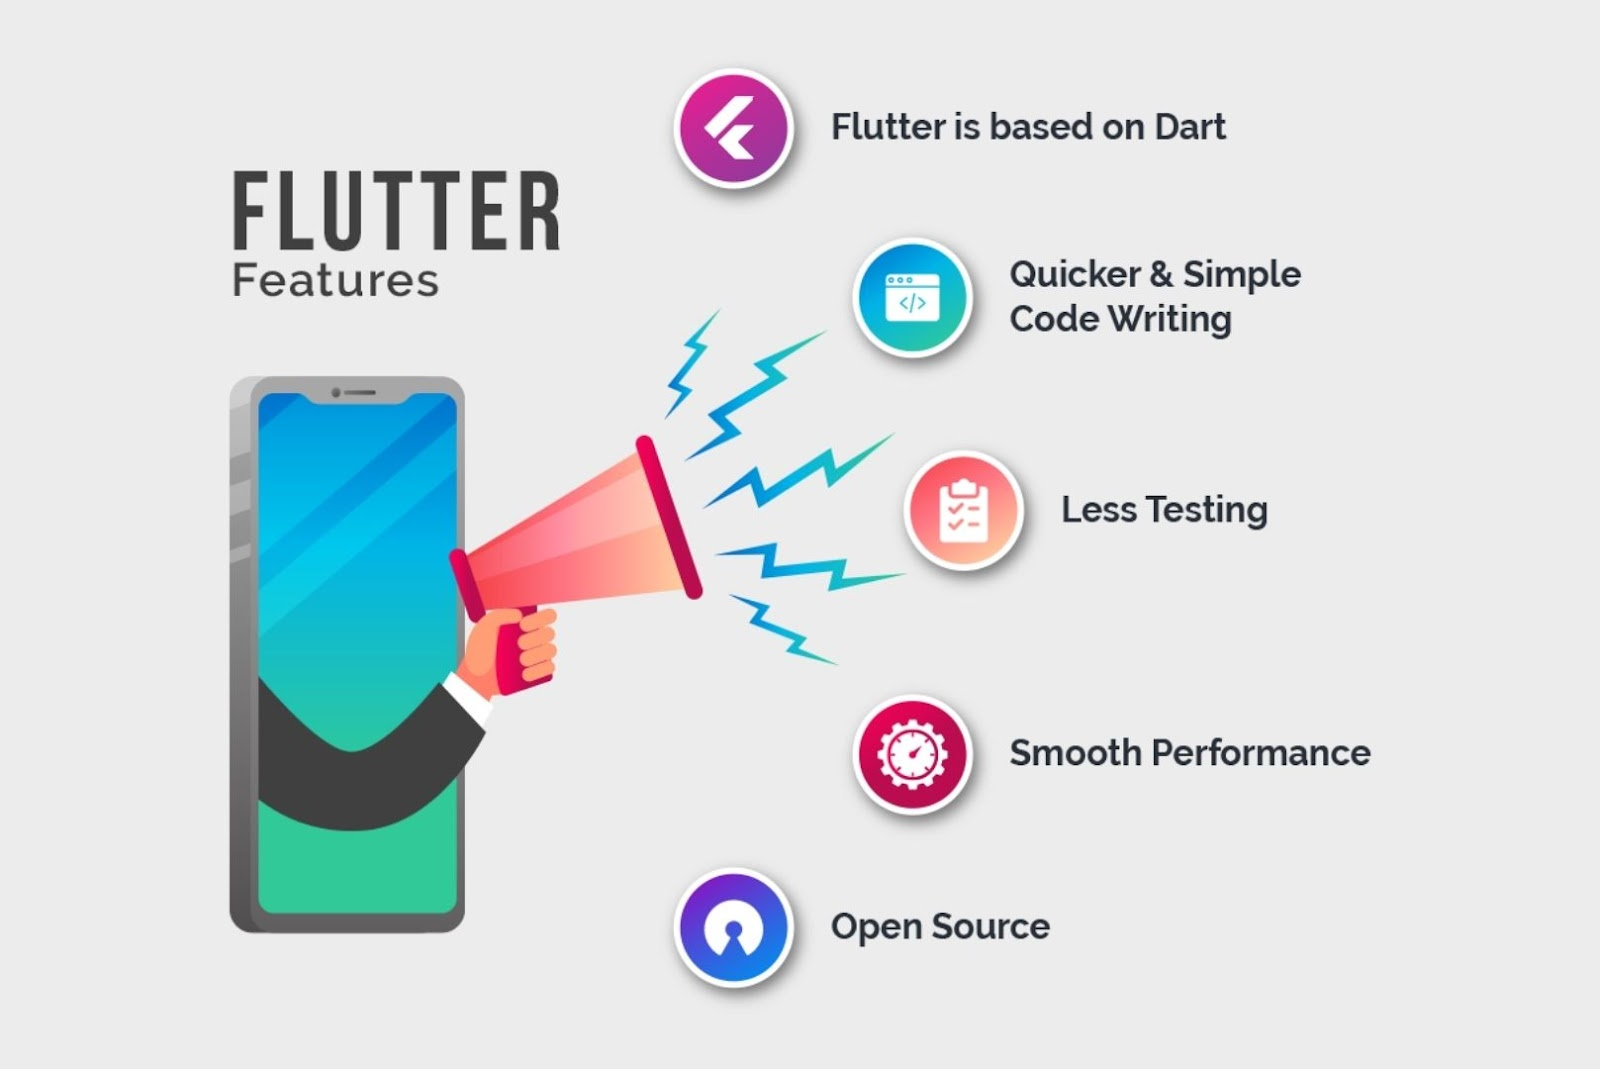 Features of flutter for hybrid apps